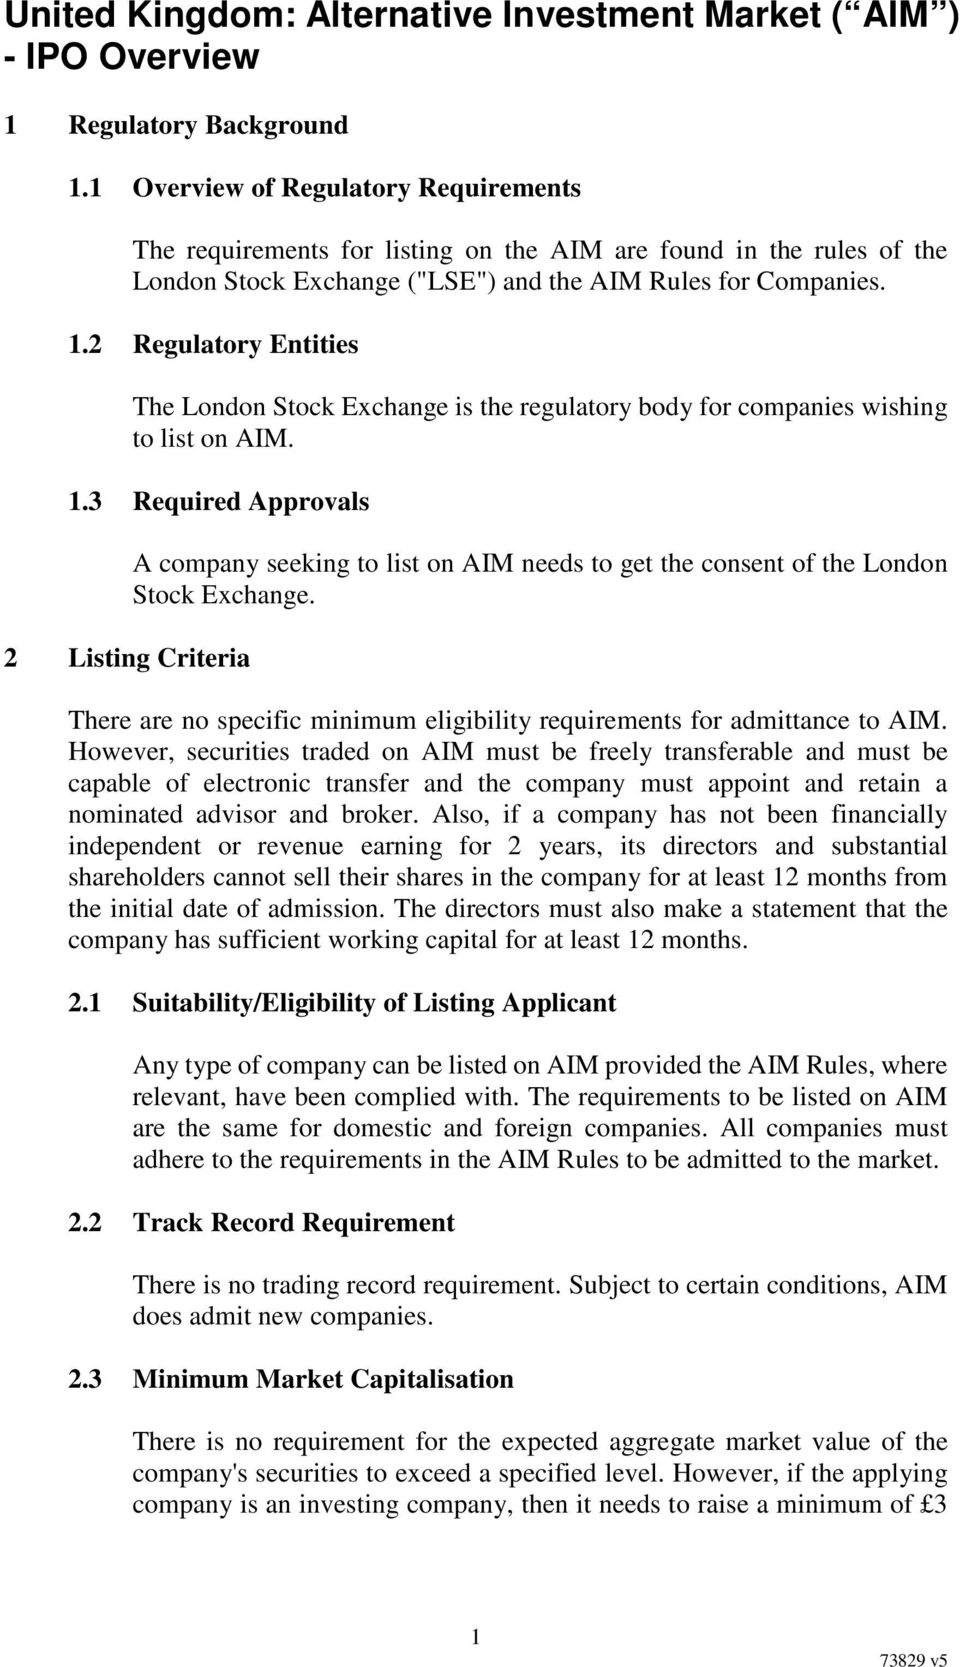 2 Regulatory Entities The London Stock Exchange is the regulatory body for companies wishing to list on AIM. 1.